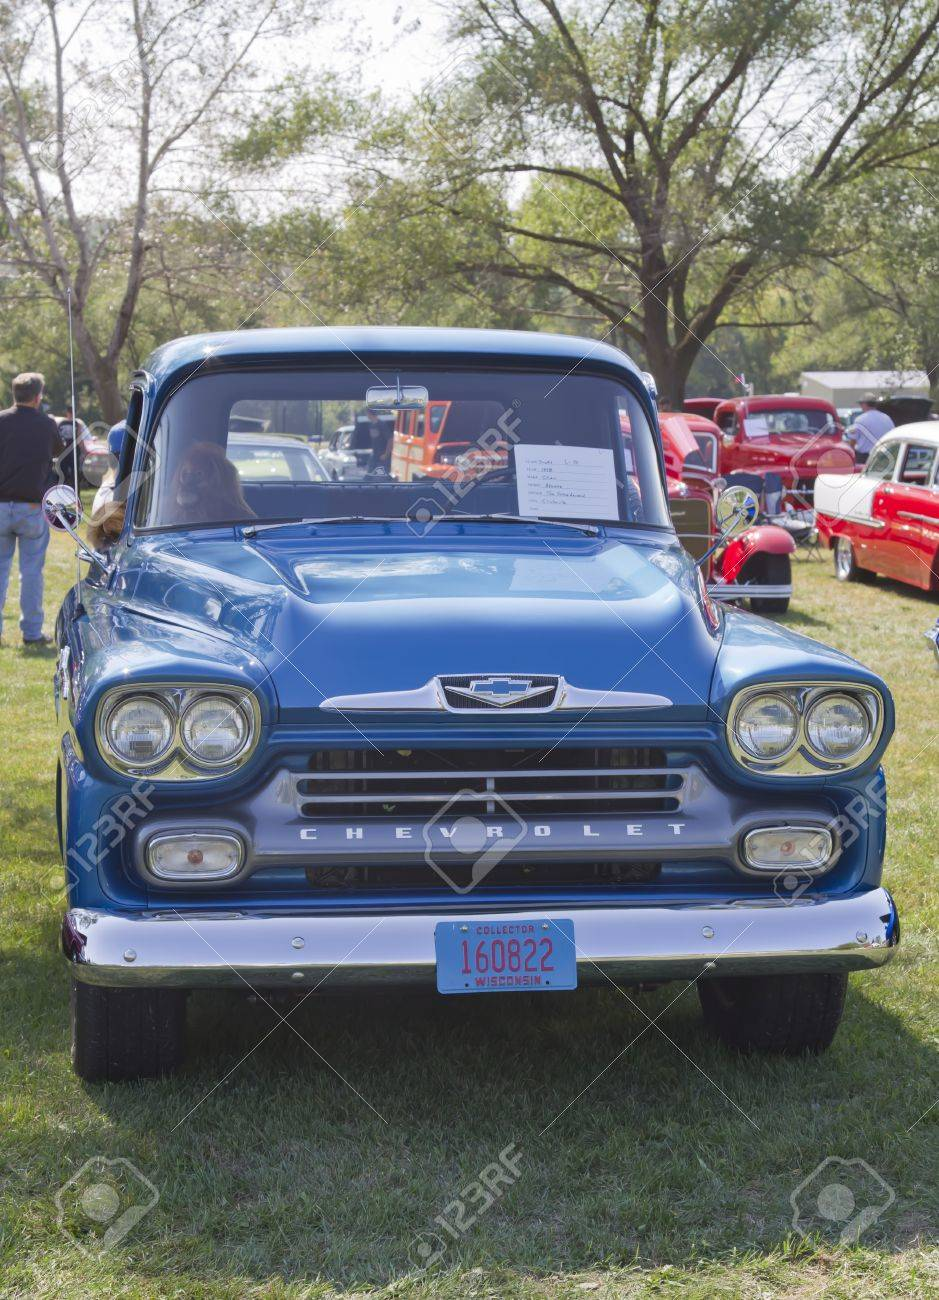 MARION, WI - SEPTEMBER 16: Blue 1958 Chevy Apache truck at the 3rd Annual Not Just Another Car Show on September 16, 2012 in Marion, Wisconsin. Stock Photo - 17523047